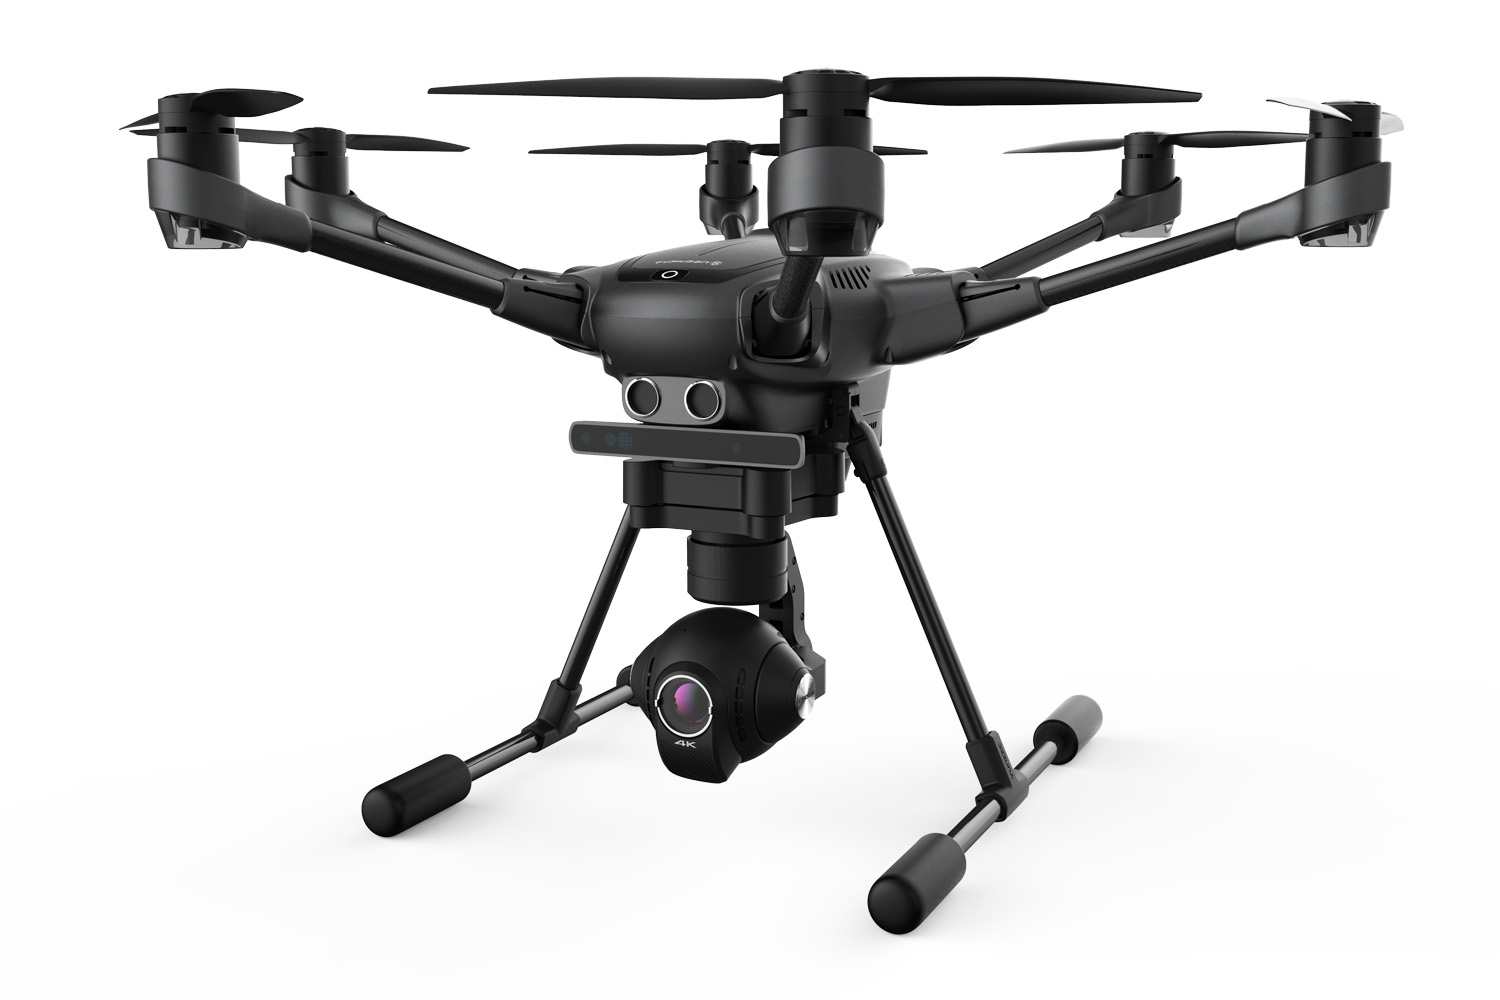 drone for gopro with Yuneec Typhoon H Hexacopter Weicht Hindernissen Aus on Watch as well Te al Achtergrond 272x11m Paars further Opbouw Stopcontact likewise Beachy Head Sussex Ith The Inspire 1 furthermore Axis Vidius Nano Drone 665332.